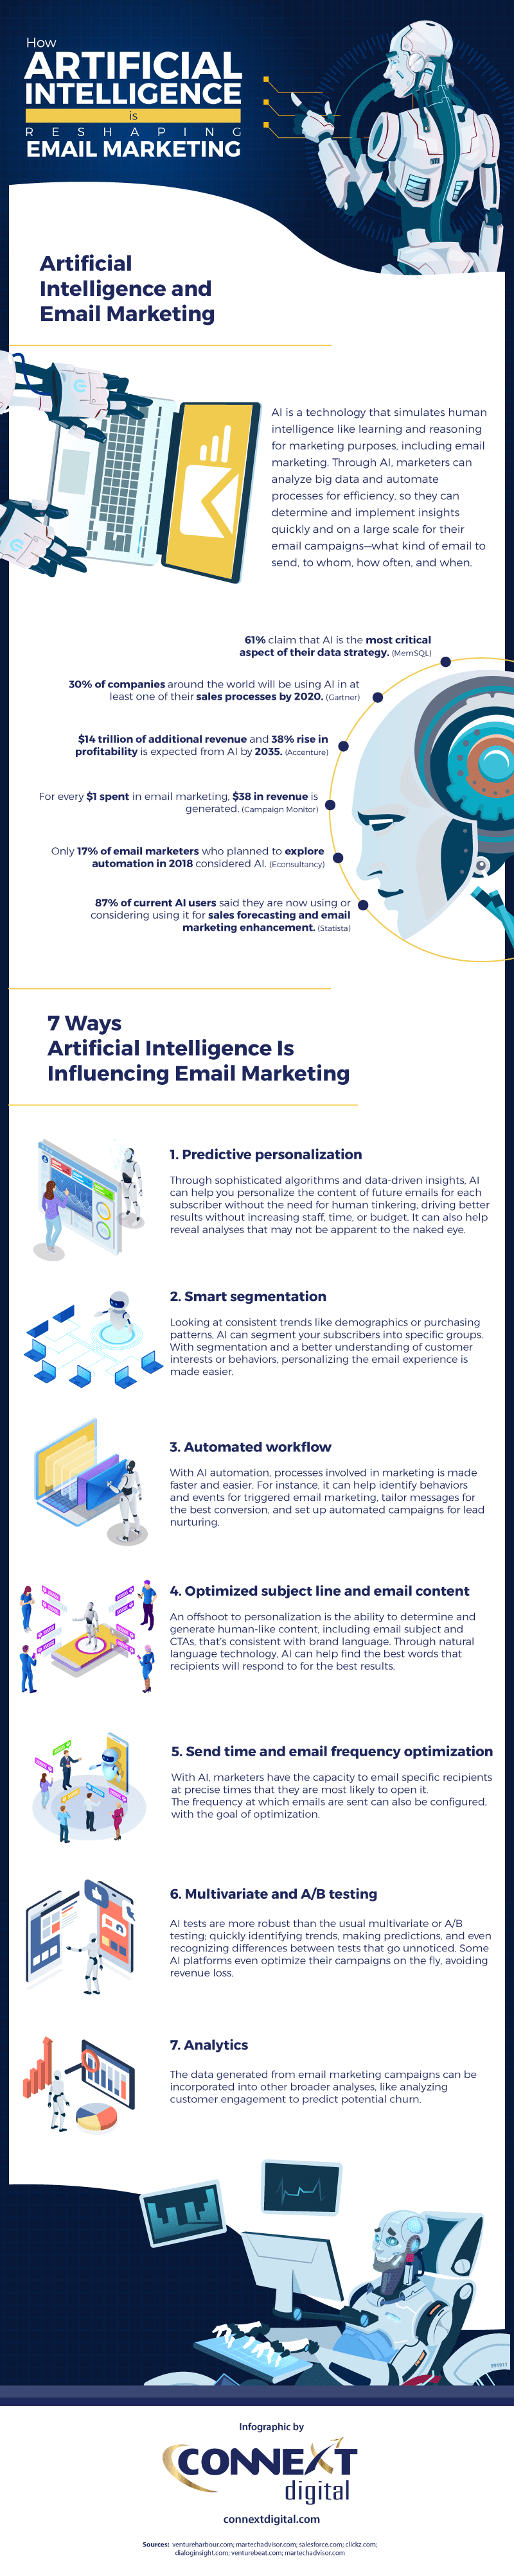 Email Marketing: How Artificial Intelligence Can Improve Your Strategy [Infographic]